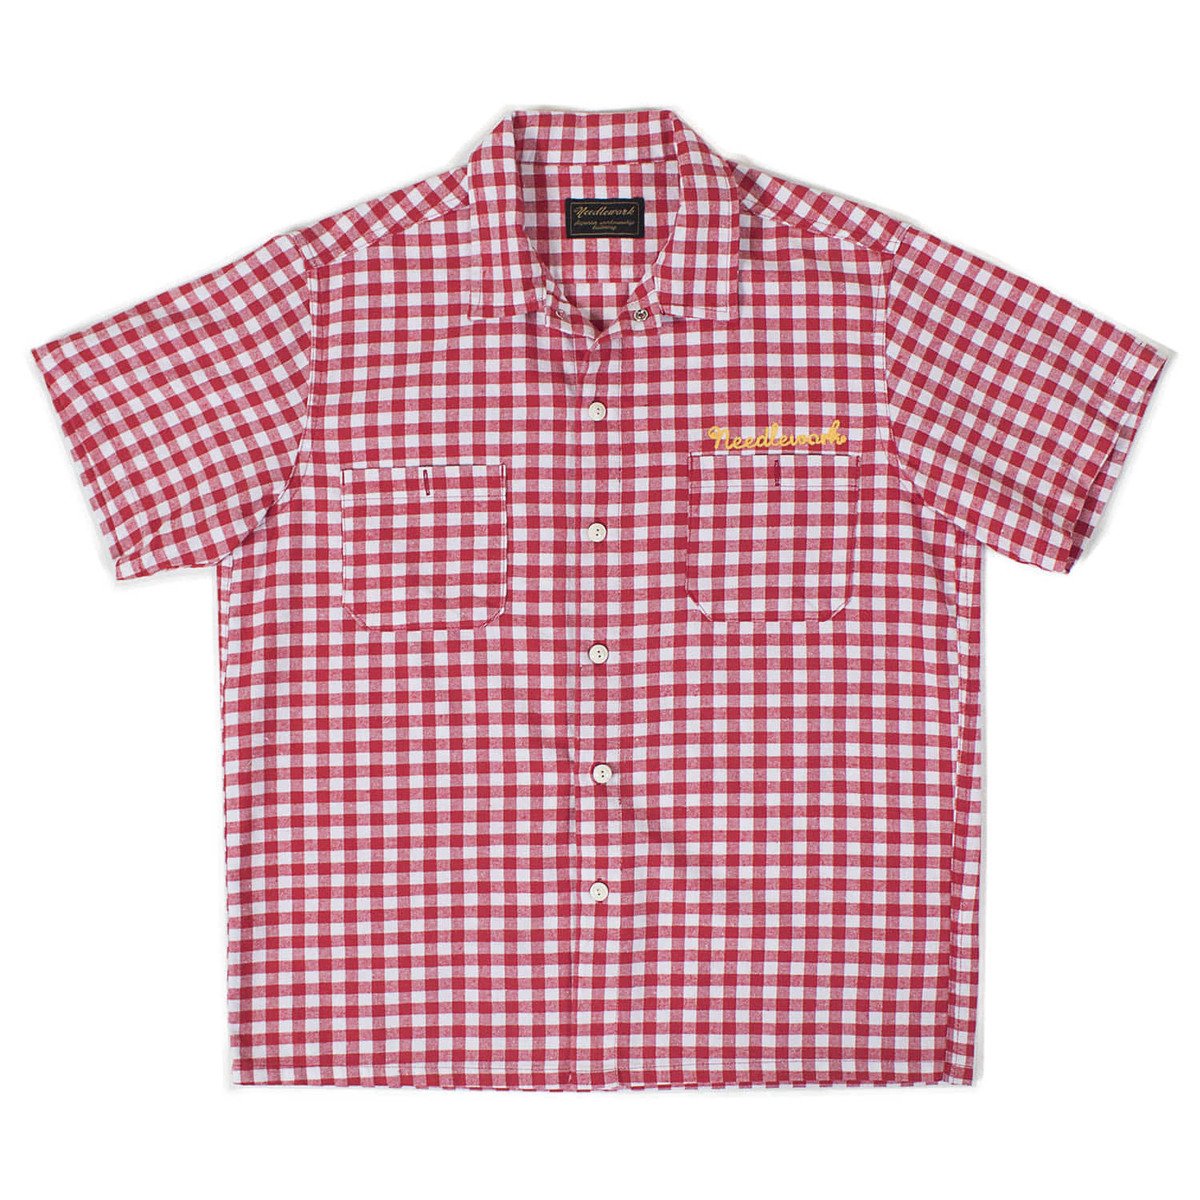 Vintage Work Shirts (Red & White)